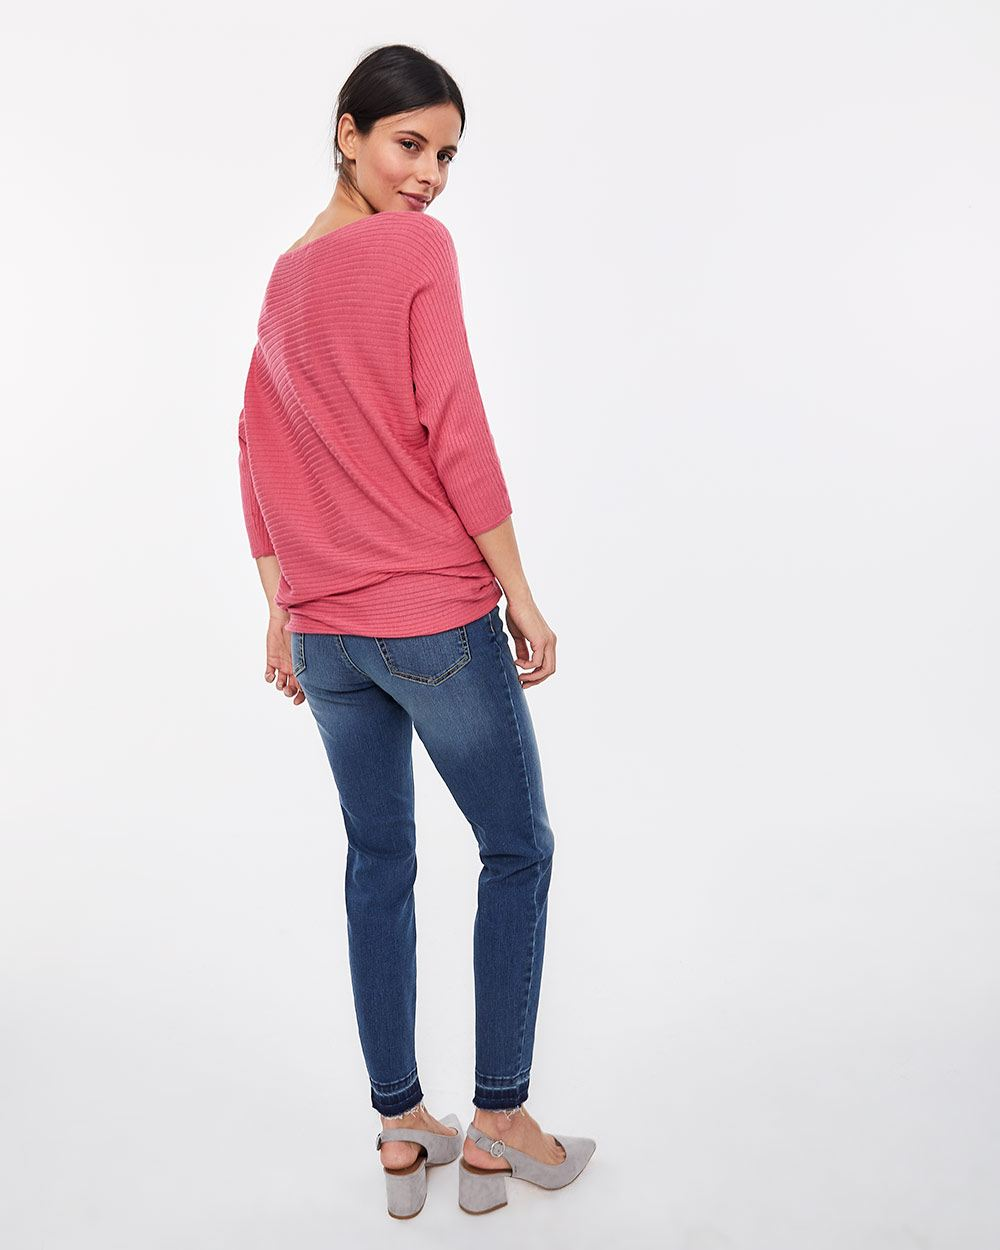 3/4 Dolman Sleeve Top